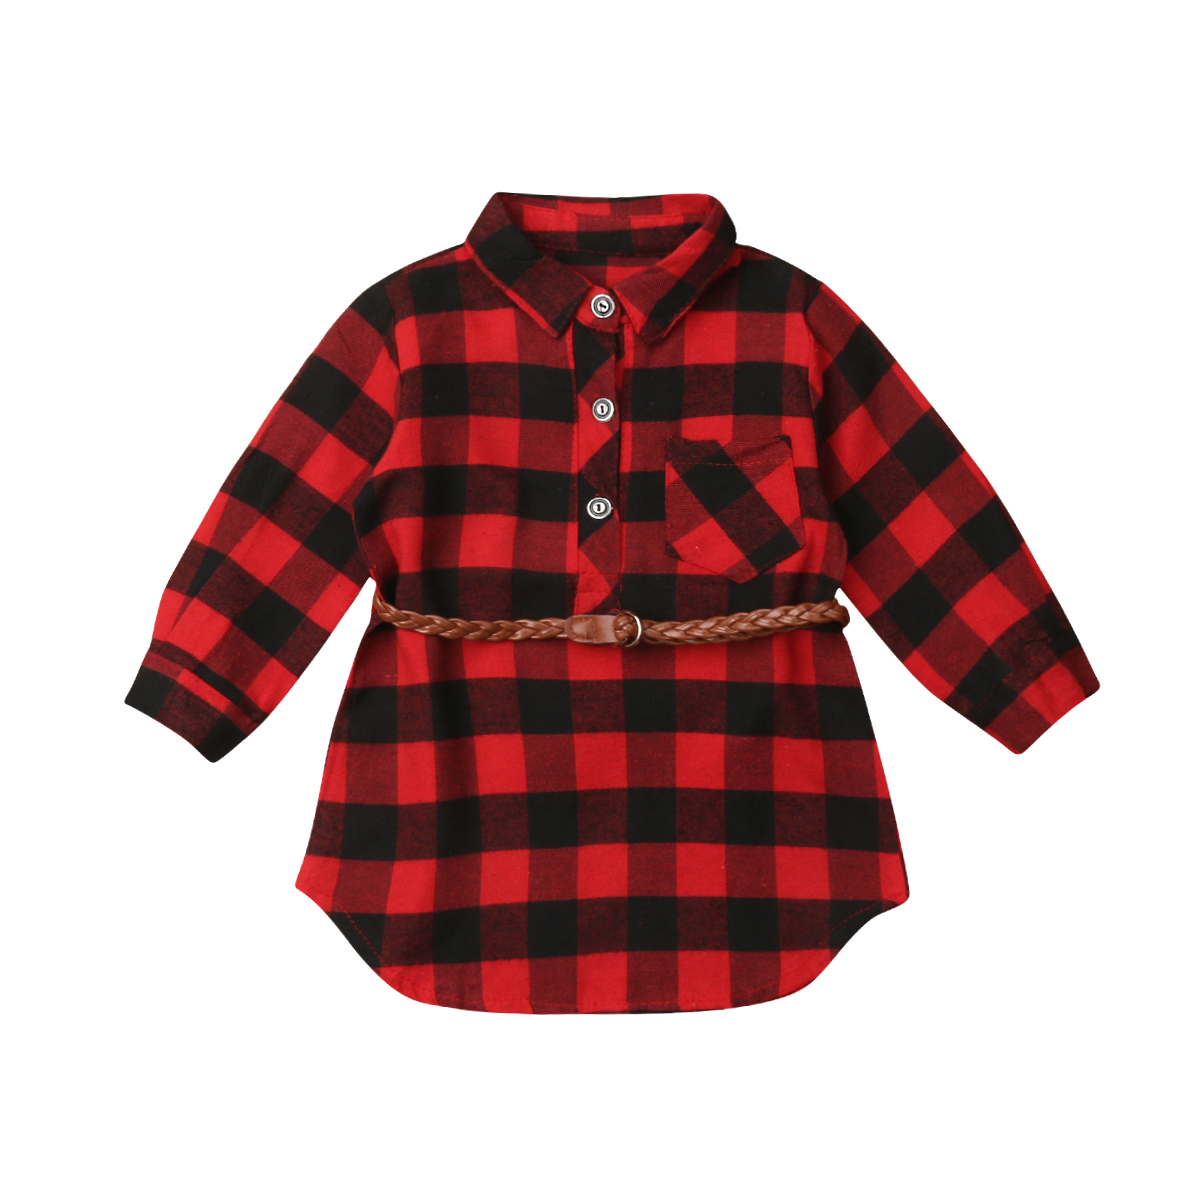 <font><b>Christmas</b></font> Kid Baby <font><b>Girl</b></font> <font><b>Dress</b></font> Newborn Baby <font><b>Girls</b></font> <font><b>Red</b></font> Plaid T shirt <font><b>Long</b></font> <font><b>Sleeve</b></font> <font><b>Dress</b></font> Princess Party <font><b>Dress</b></font> Xmas Clothes image